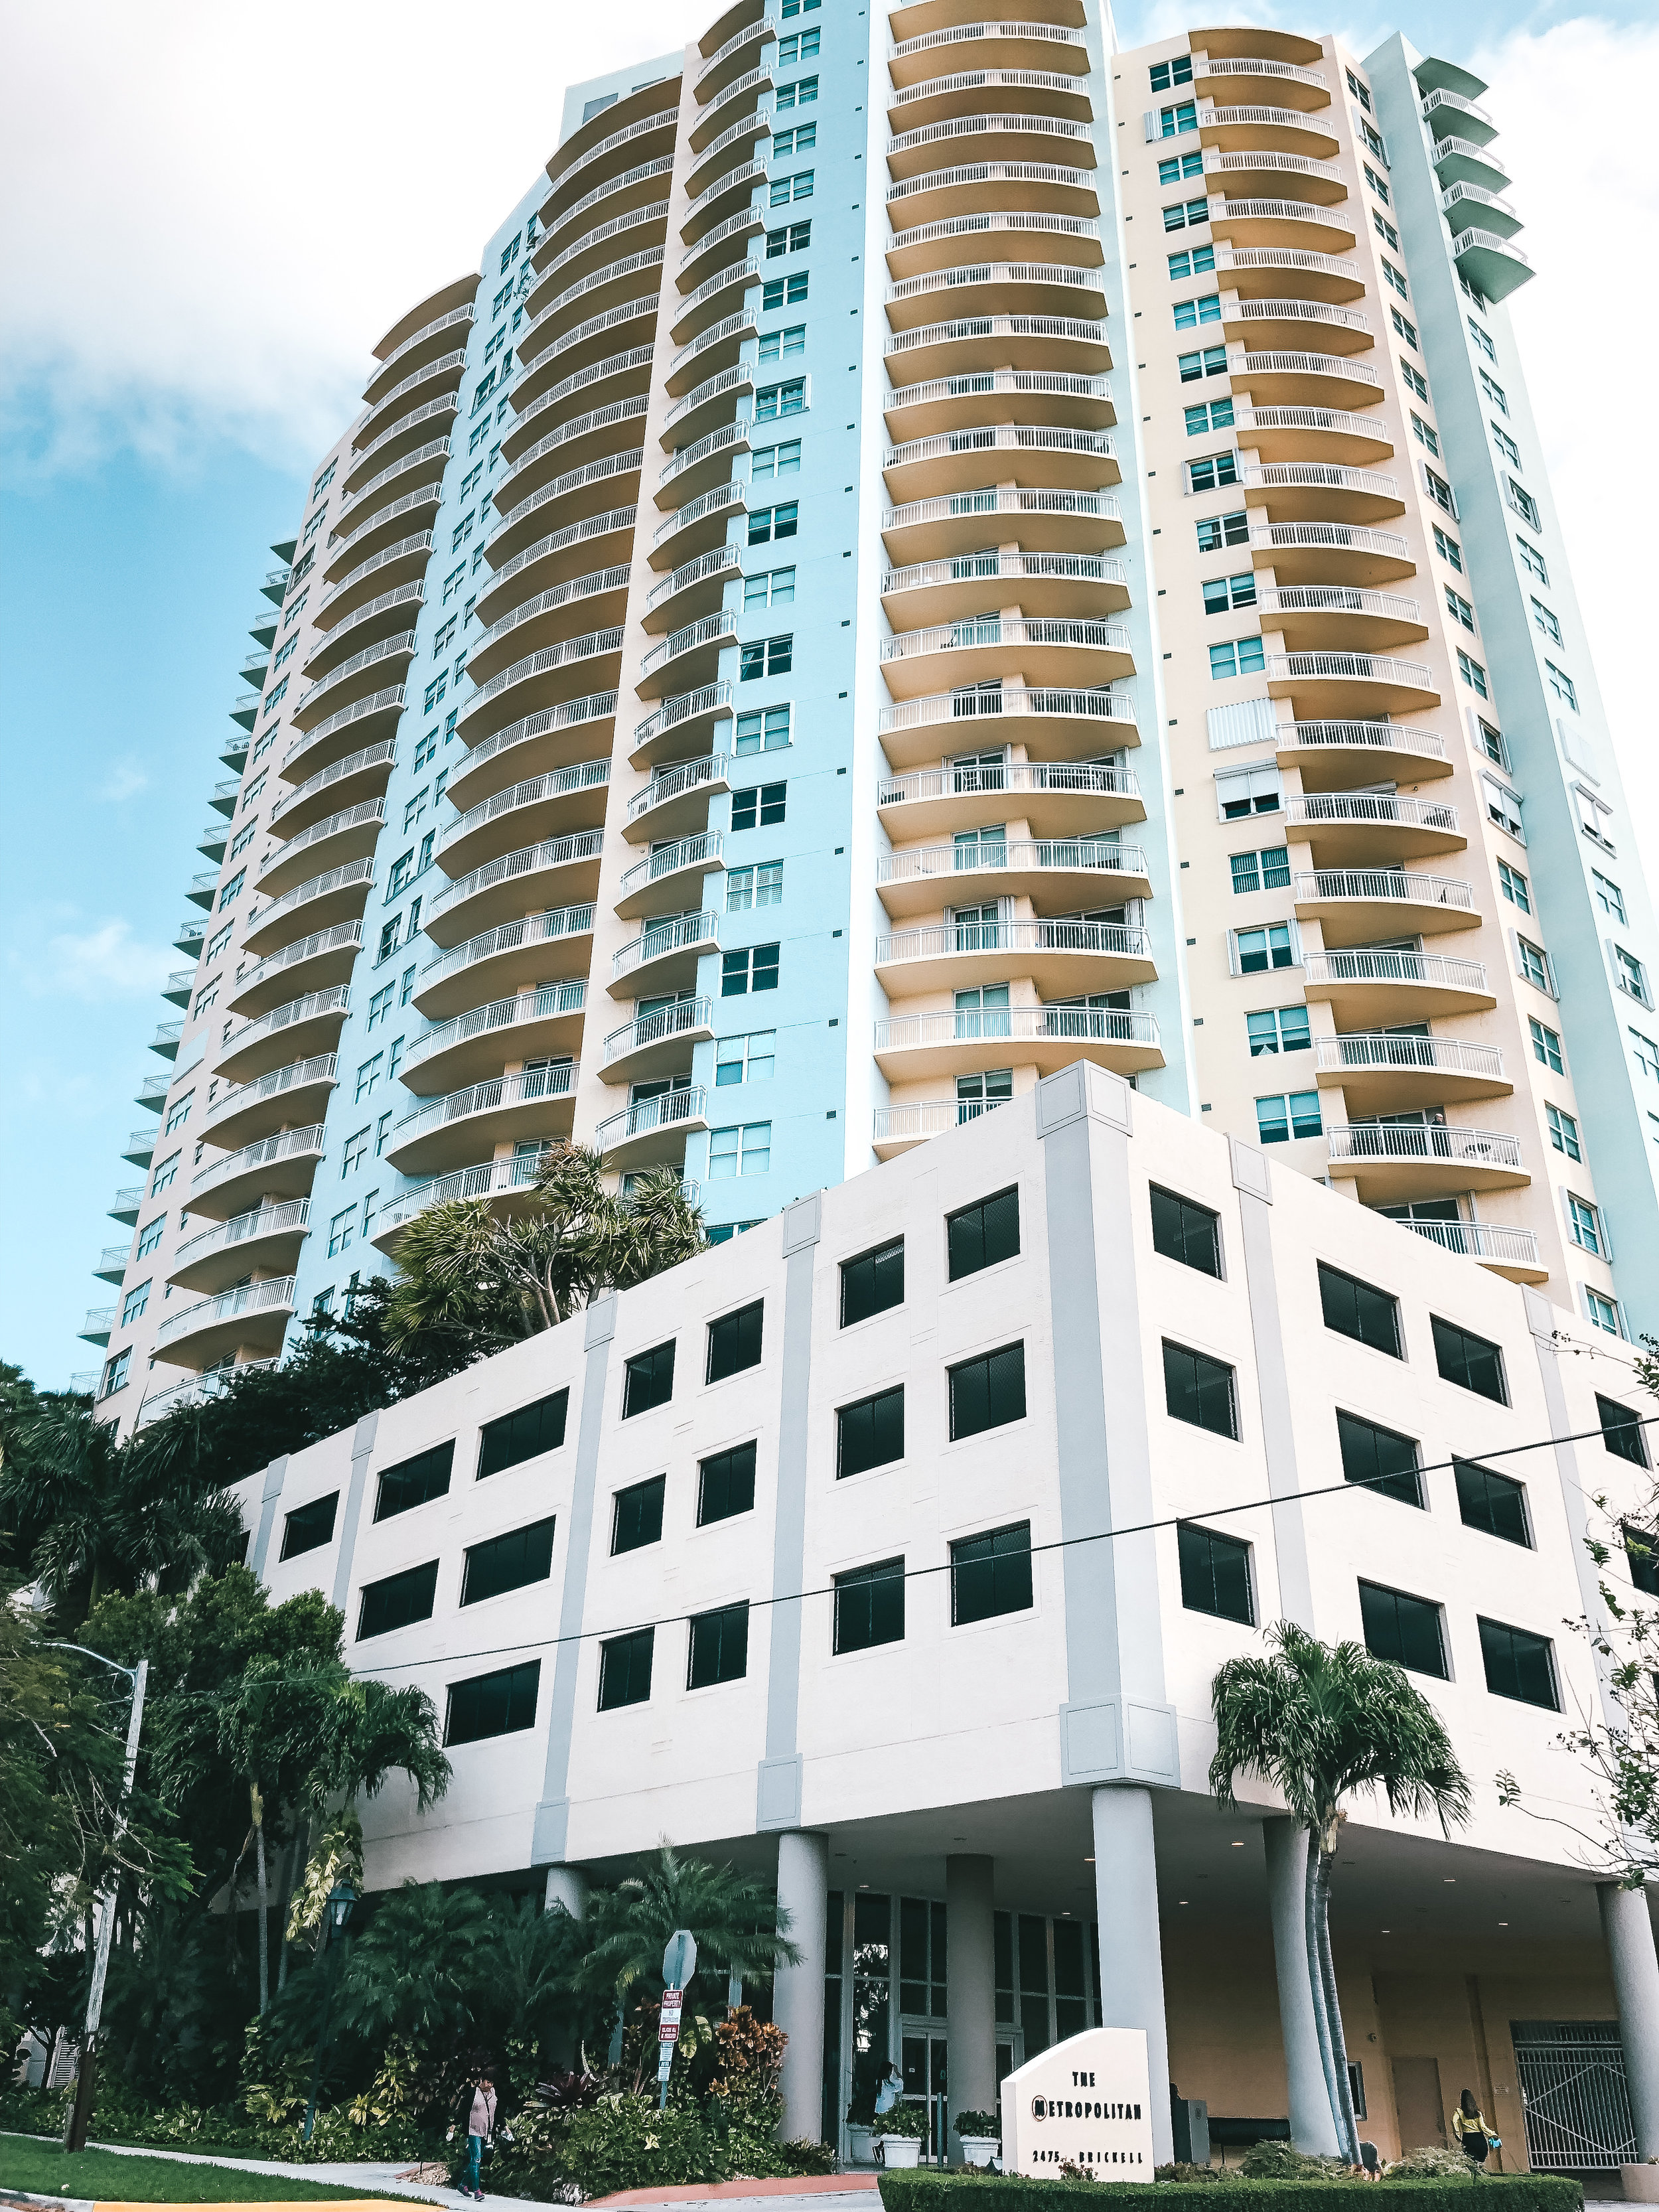 The Metropolitan - Address: 2475 Brickell Ave., Miami, FL 33129Number of Units: 198Info: Ernesto Cuesta, President | Diana Puentes, Property Manager